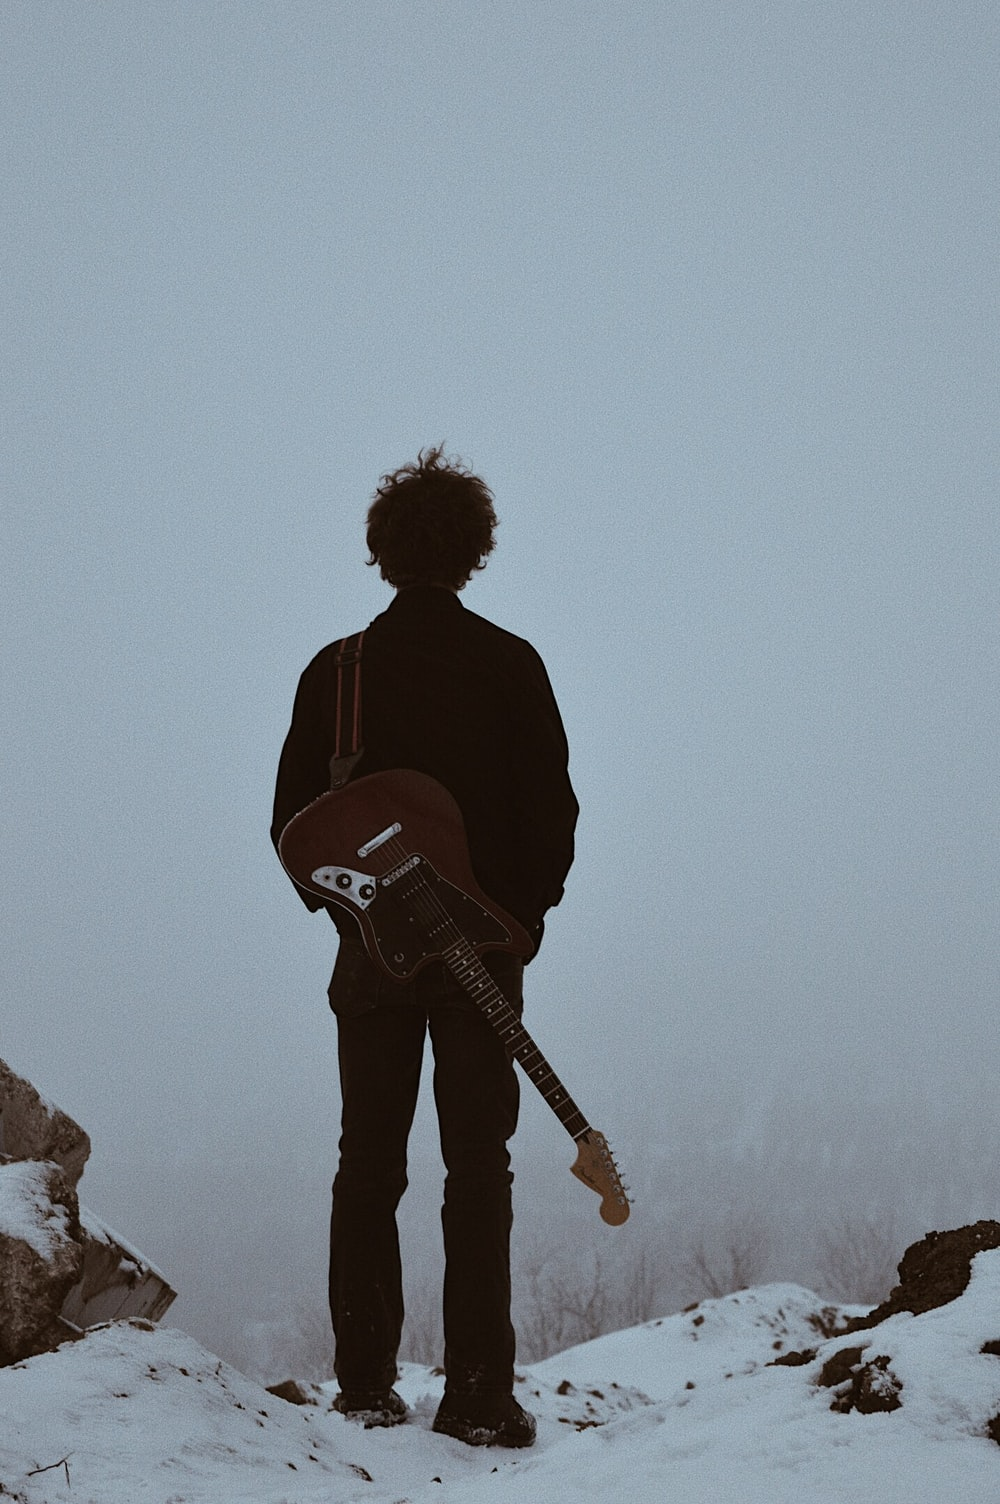 man with guitar on his back standing on cliff